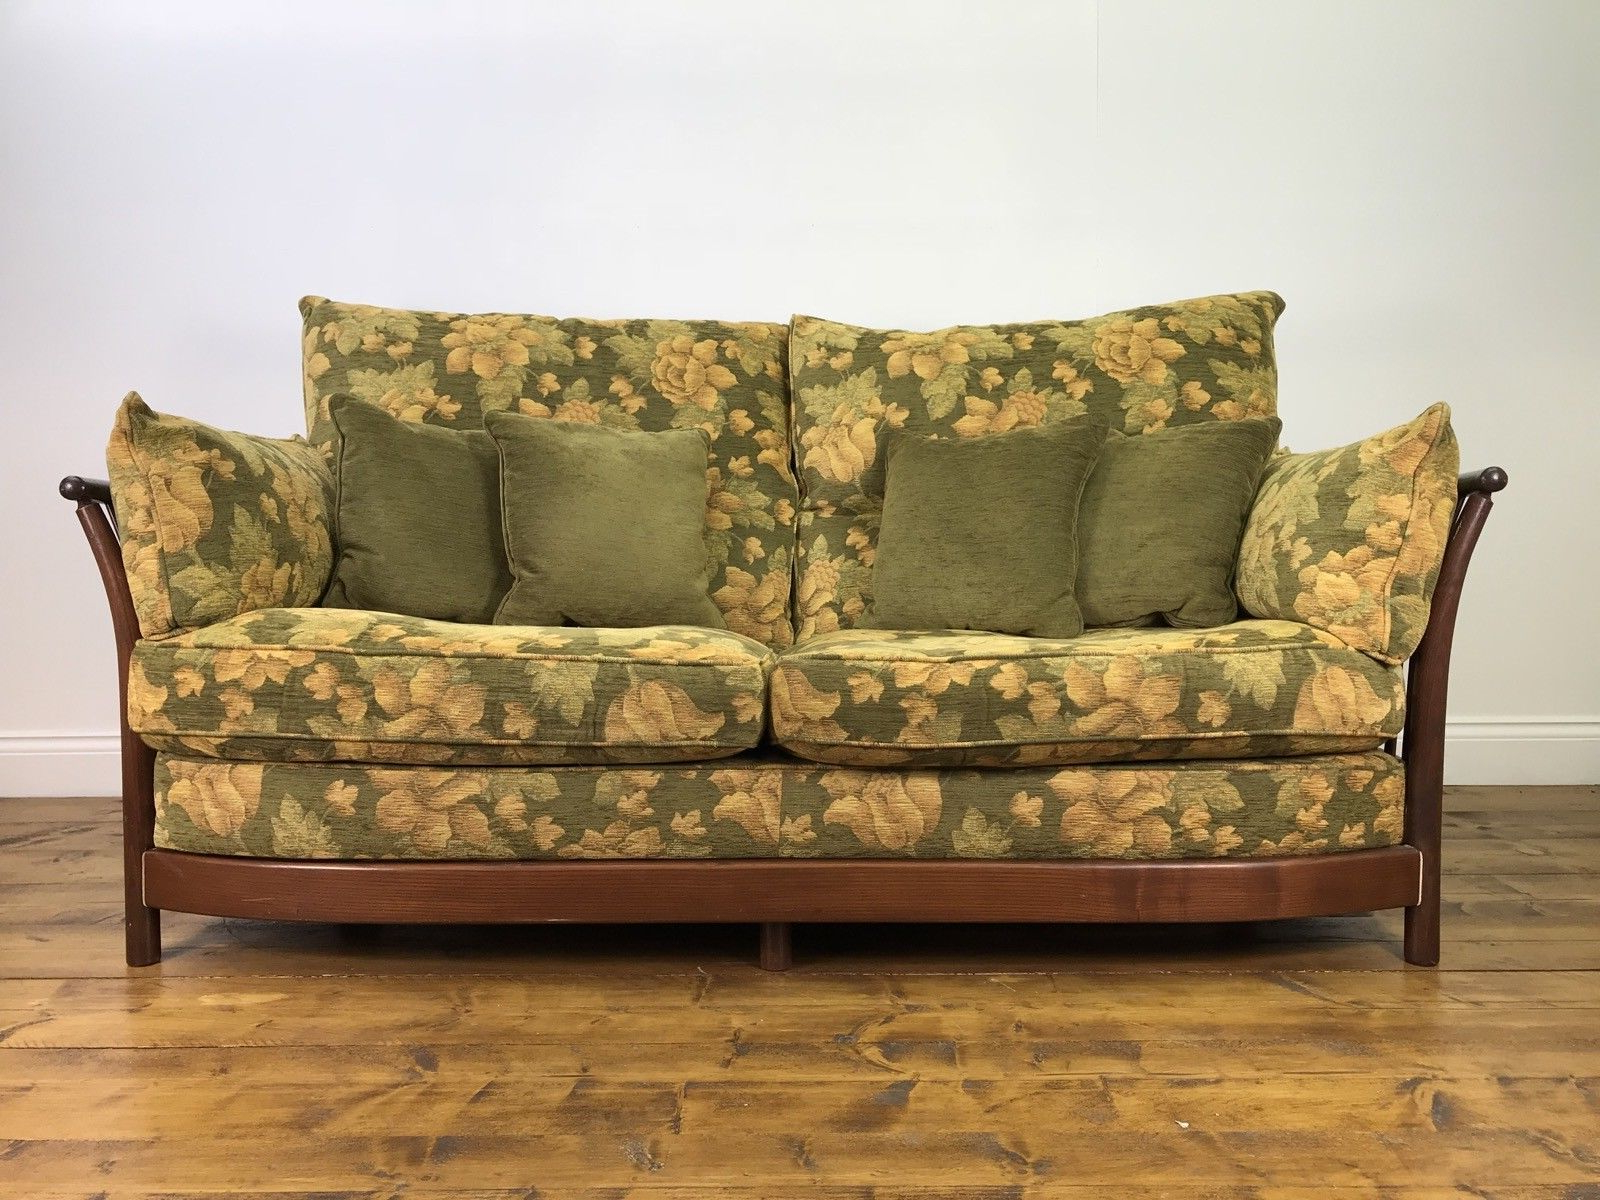 Newest Stunning Ercol Renaissance 3 Seater Sofa Golden Dawn Elm Chair Sofa In Elm Sofa Chairs (View 17 of 20)